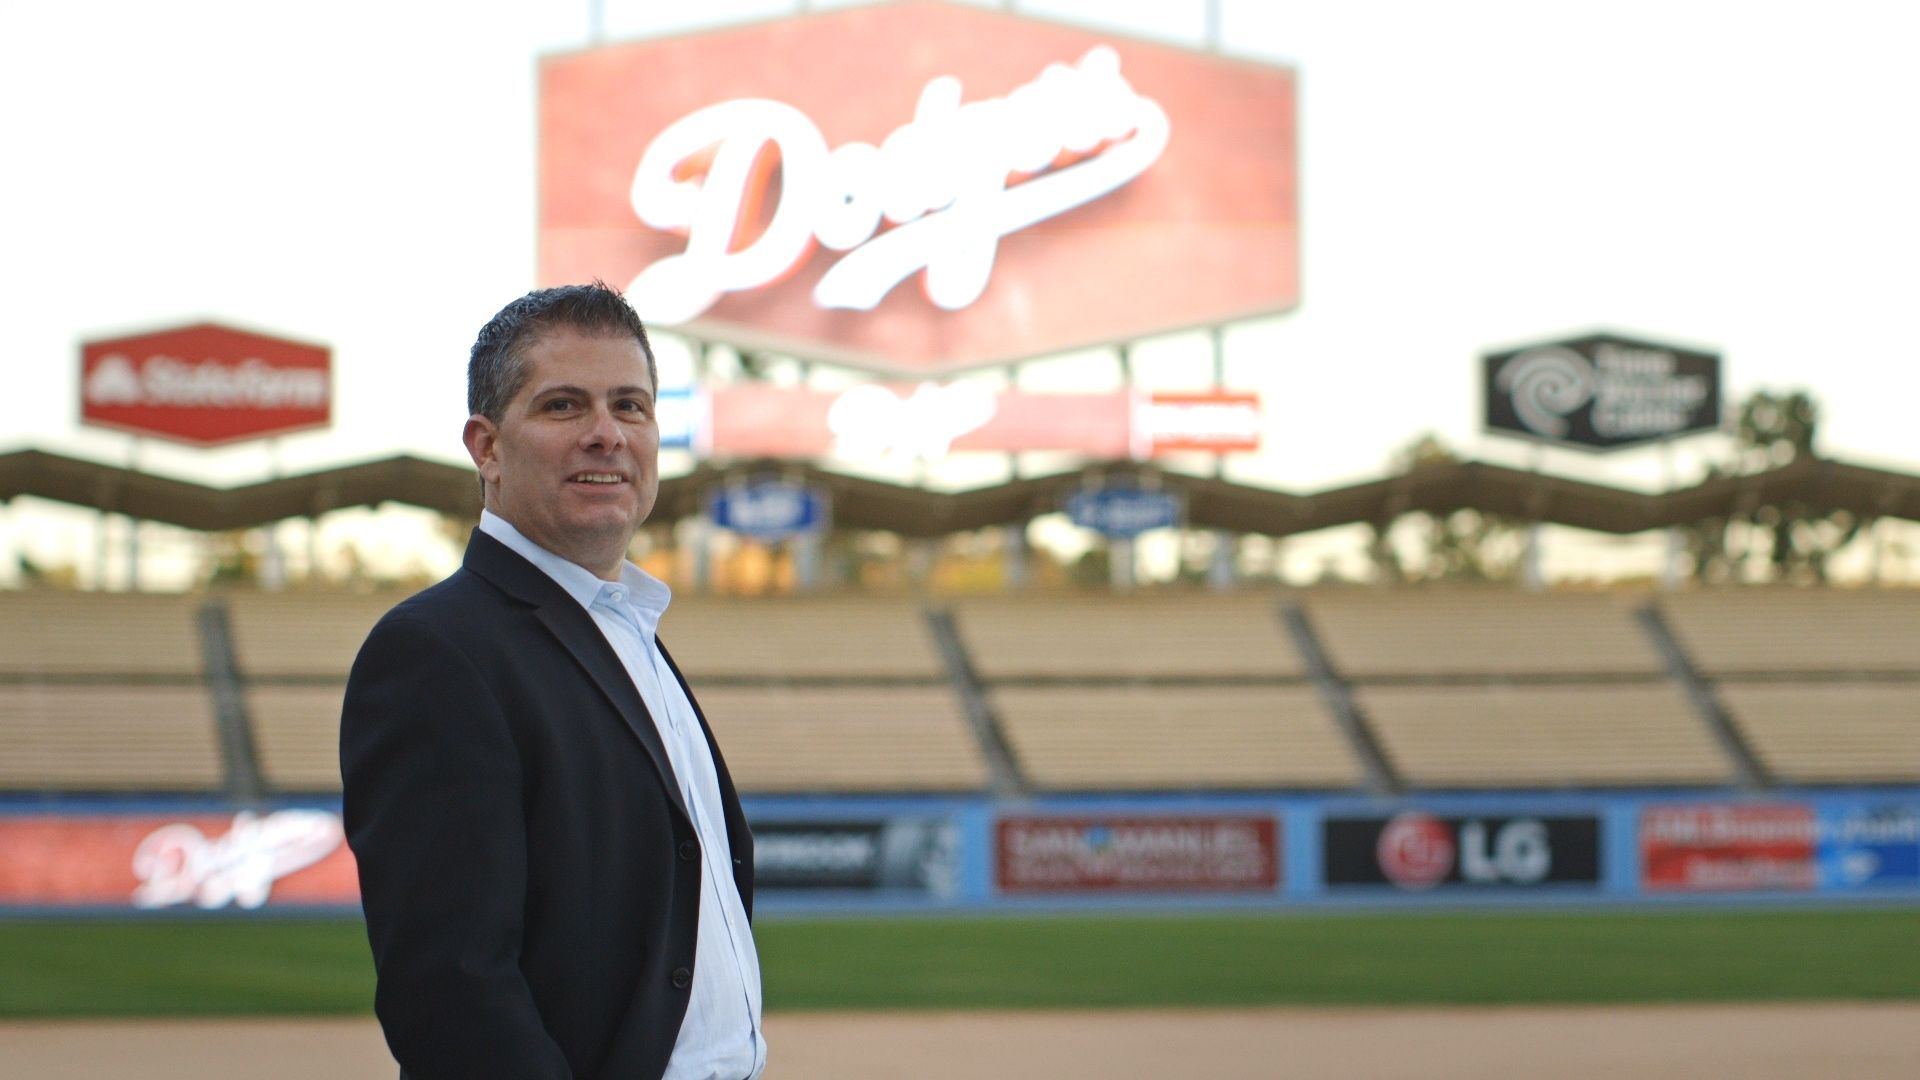 Erik Braverman, director of marketing with the Dodgers, came out publicly in 2015.